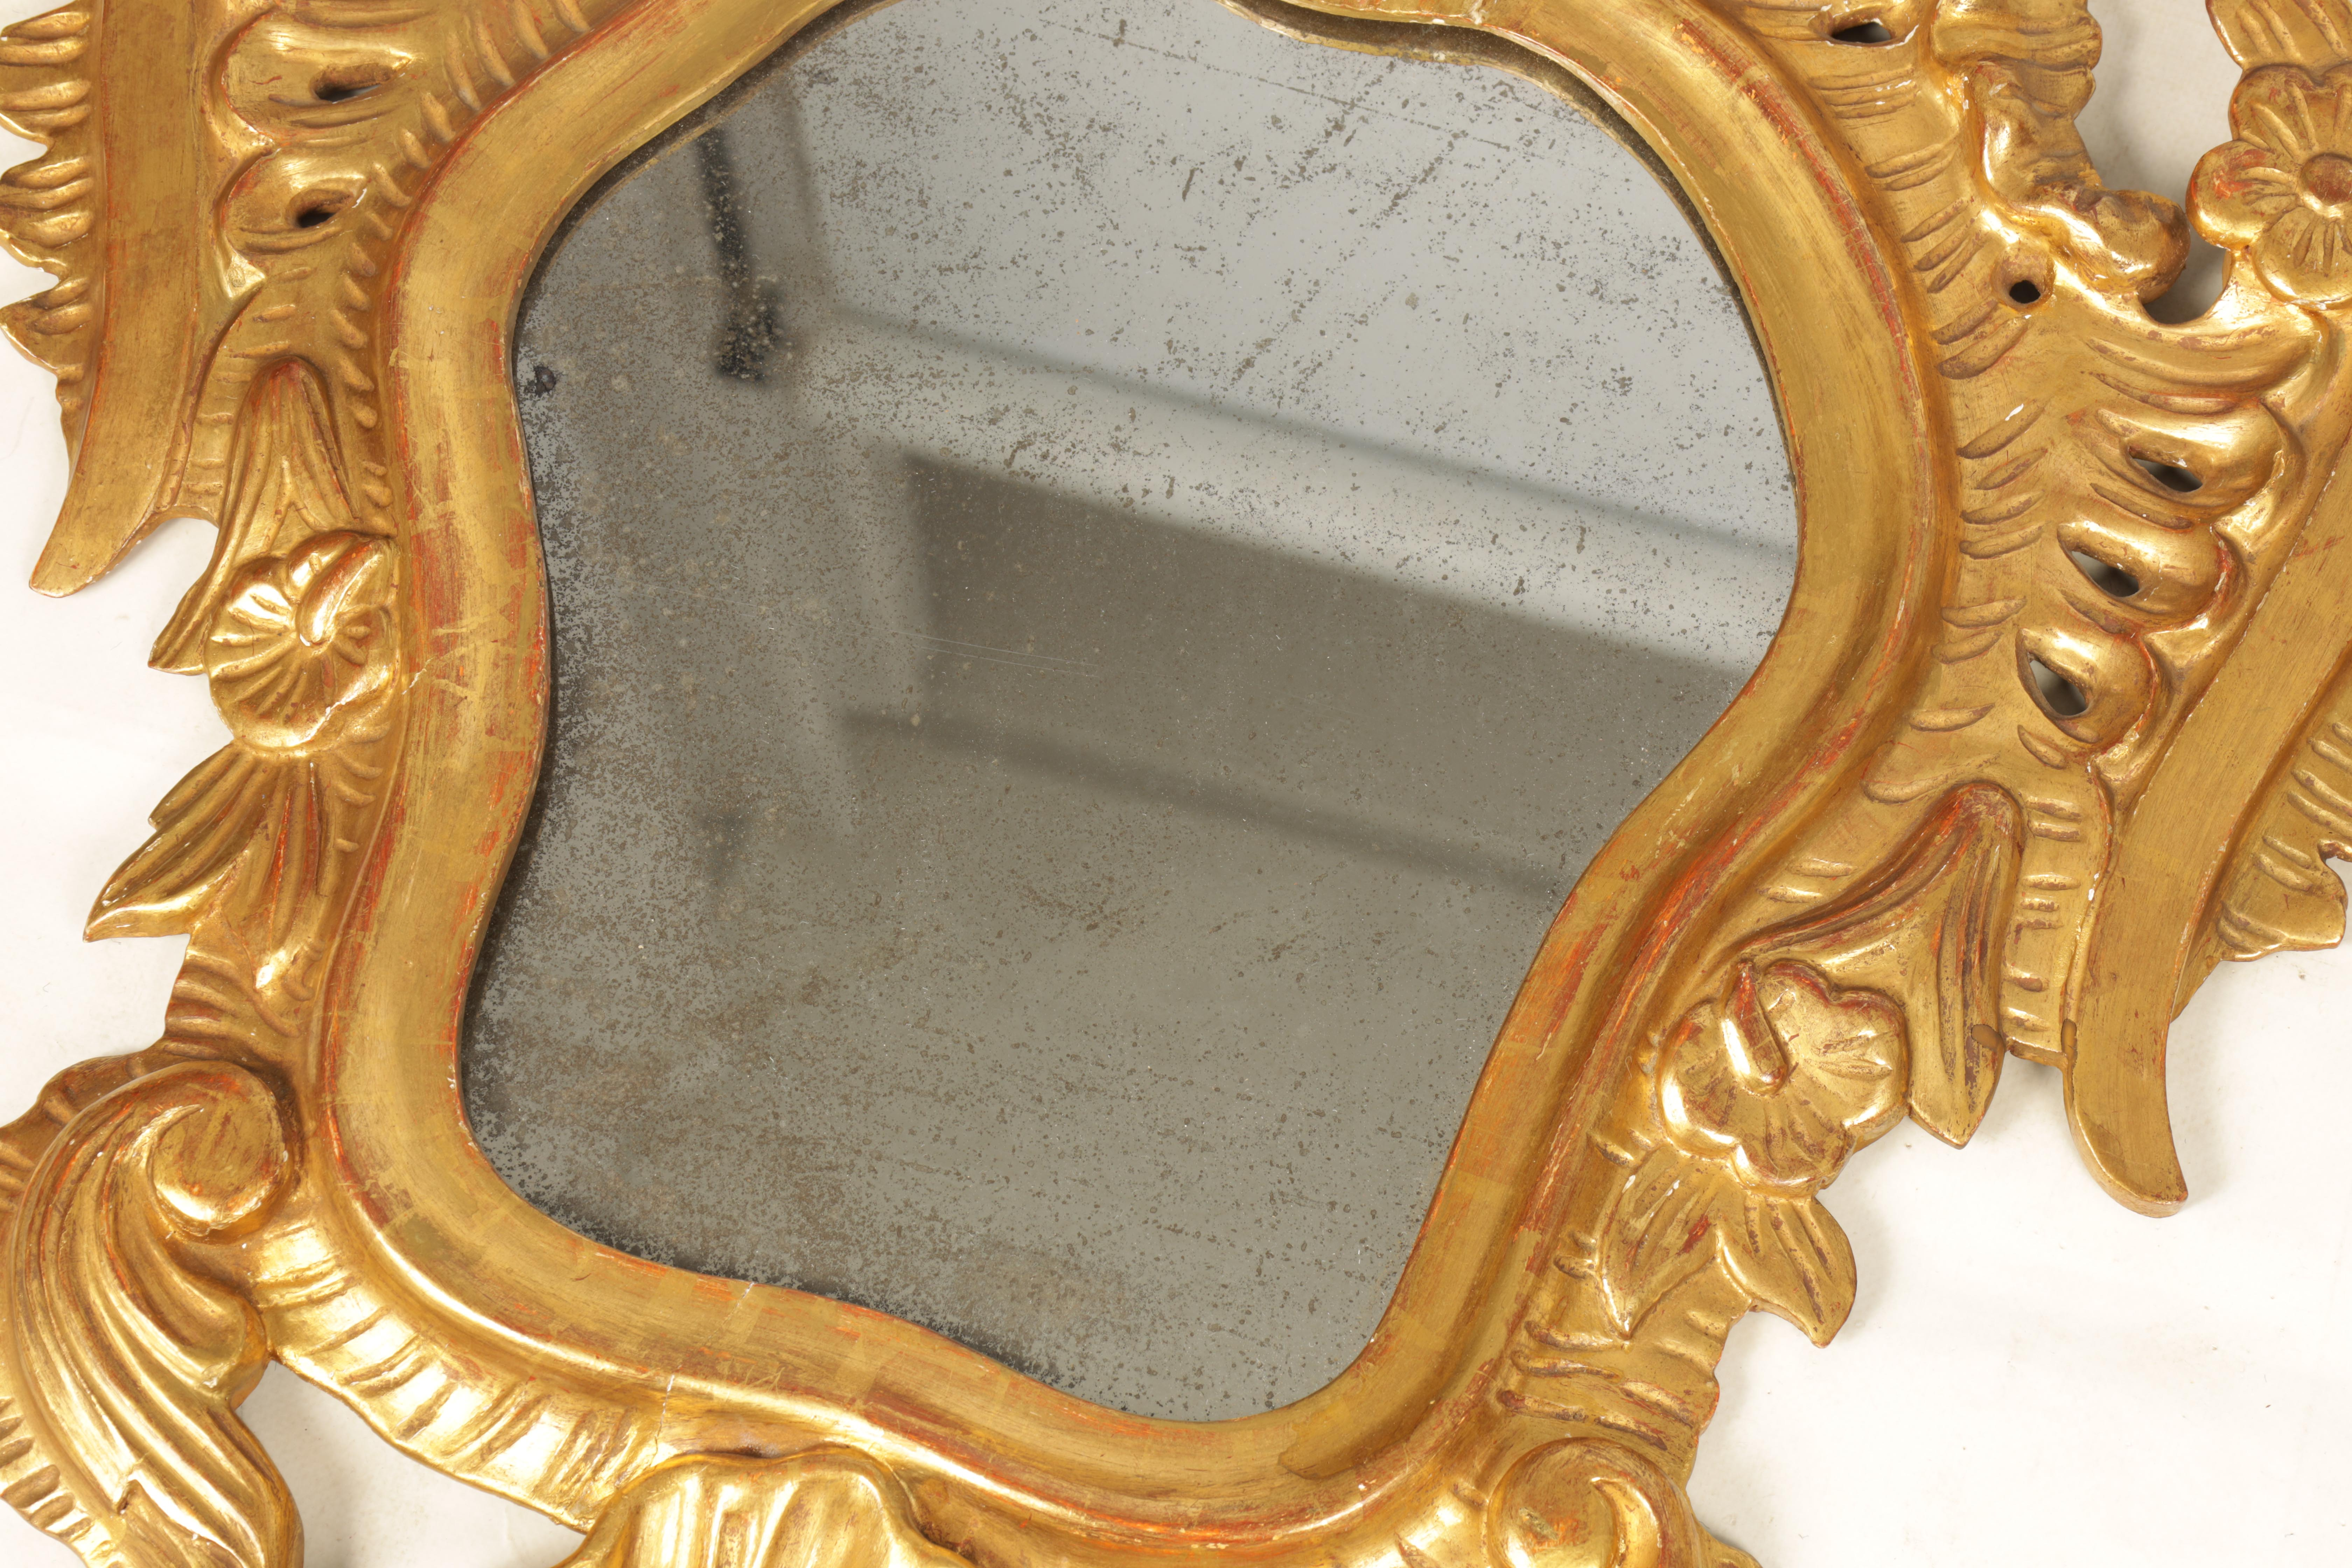 A PAIR OF 19TH CENTURY CARVED GILT WOOD ITALIAN FLORENTINE MIRRORS with leaf and shell carved frames - Image 4 of 8